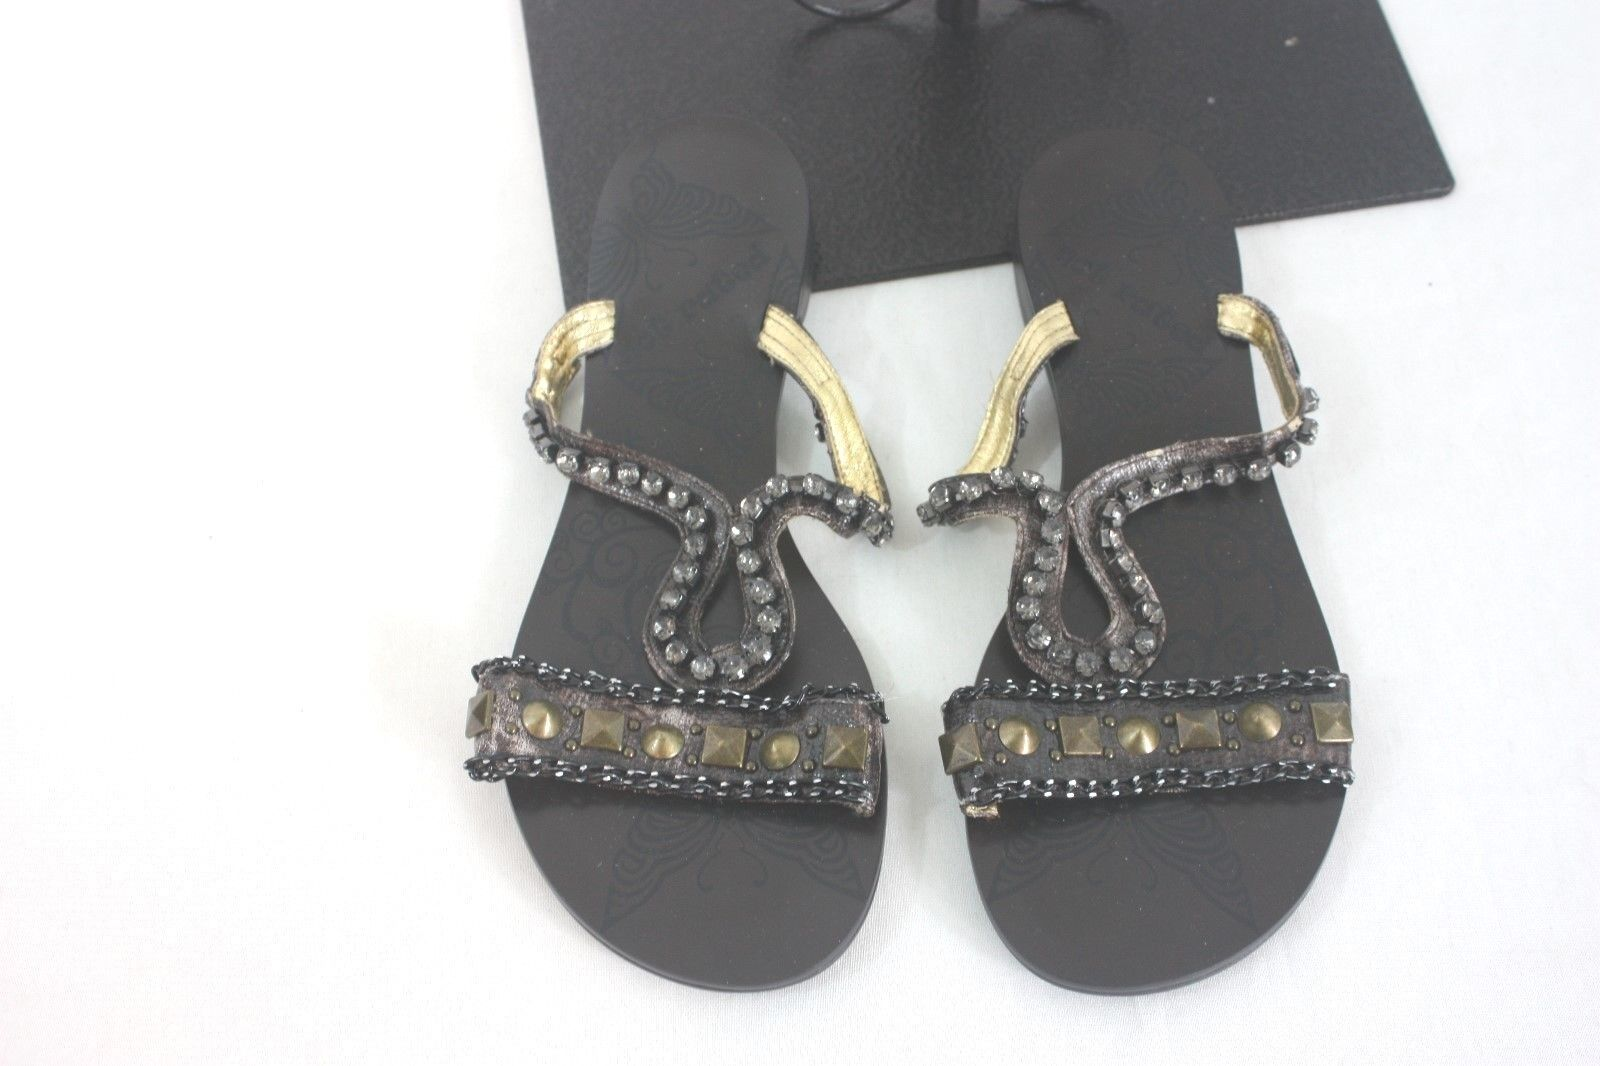 Sandals Flip Flops Jewelled 6.5 Not Rated  Size 6.5 Jewelled NEW 64c36b